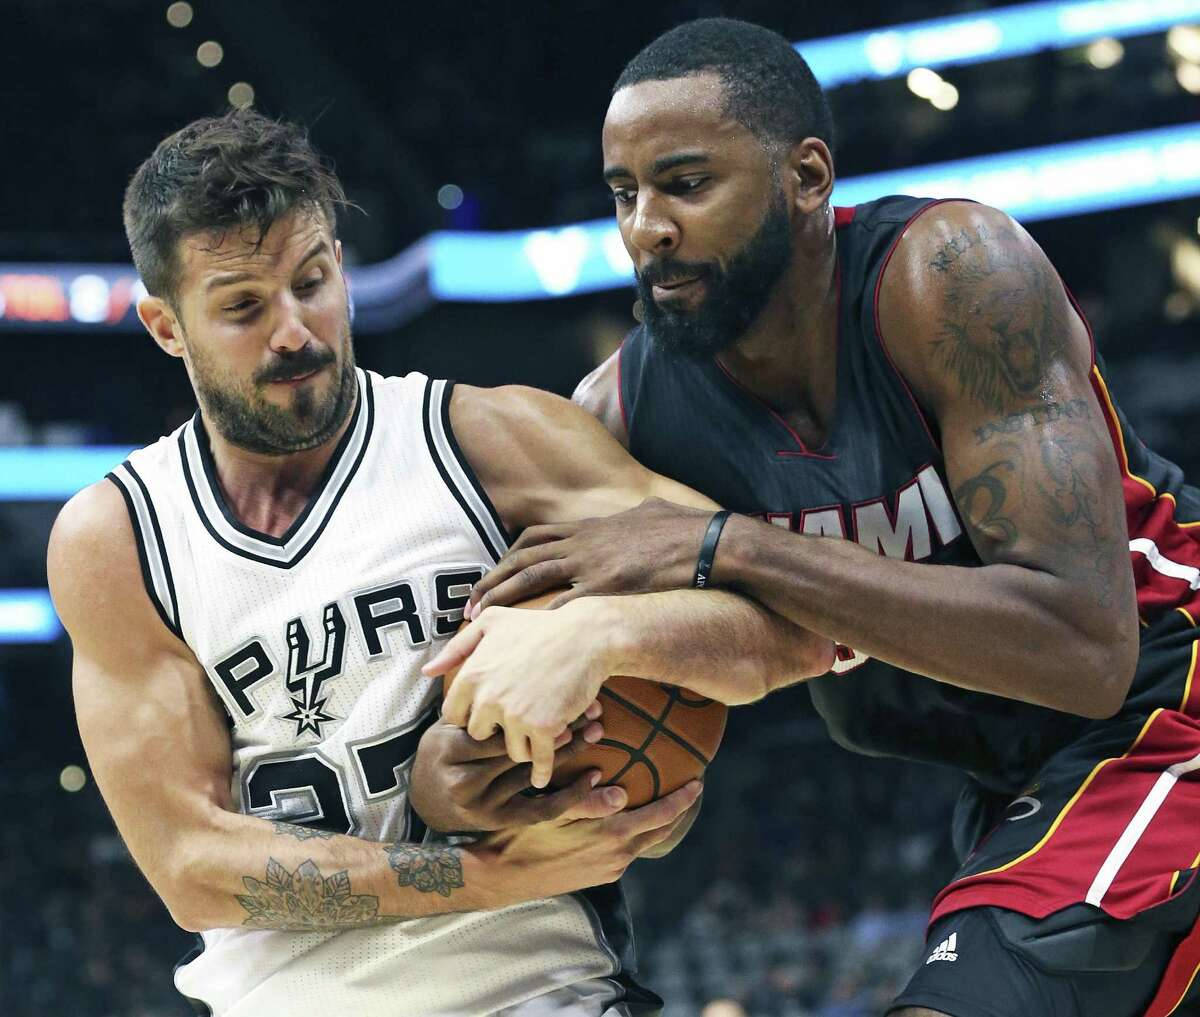 Nicolas Laprovittola wrestles the ball away from Keith Benson as the Spurs host Miami at the AT&T Center on October 14, 2016.